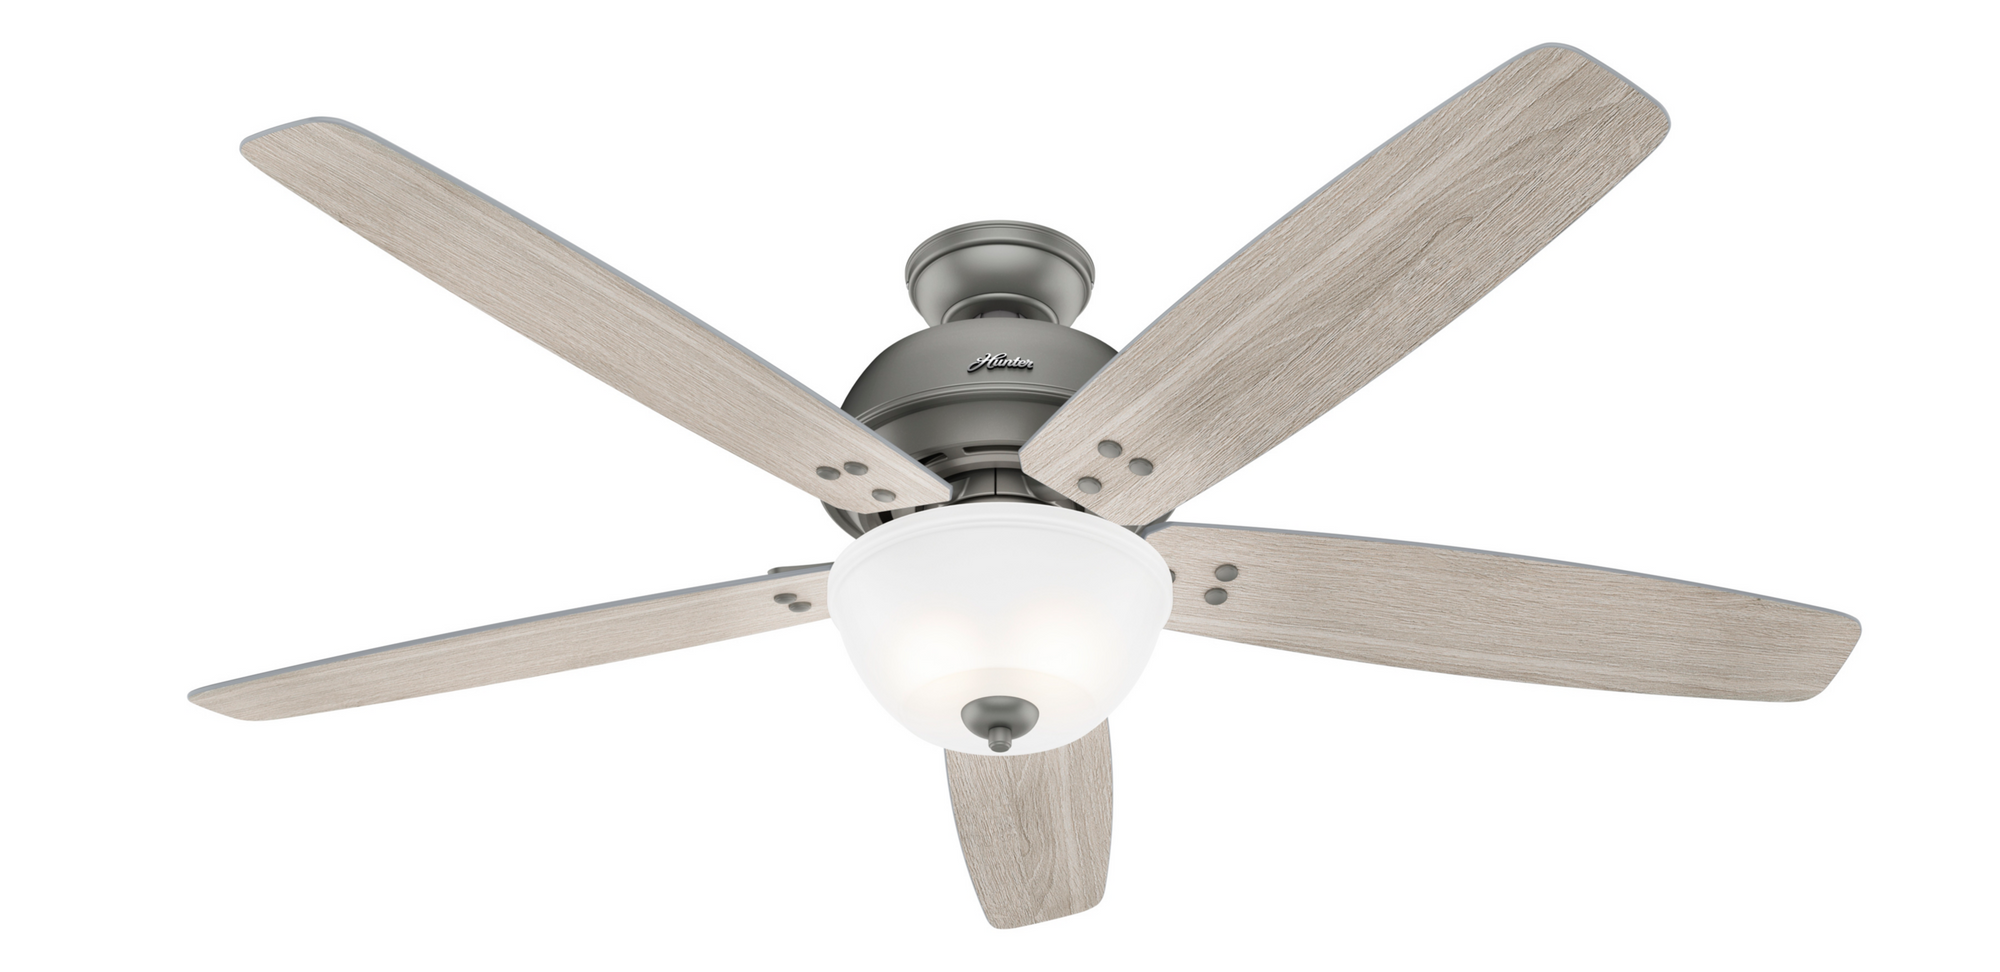 Hunter Indoor Highdale Ceiling Fan with LED LightJD inch, Brushed Nickel/Chrome, 50406